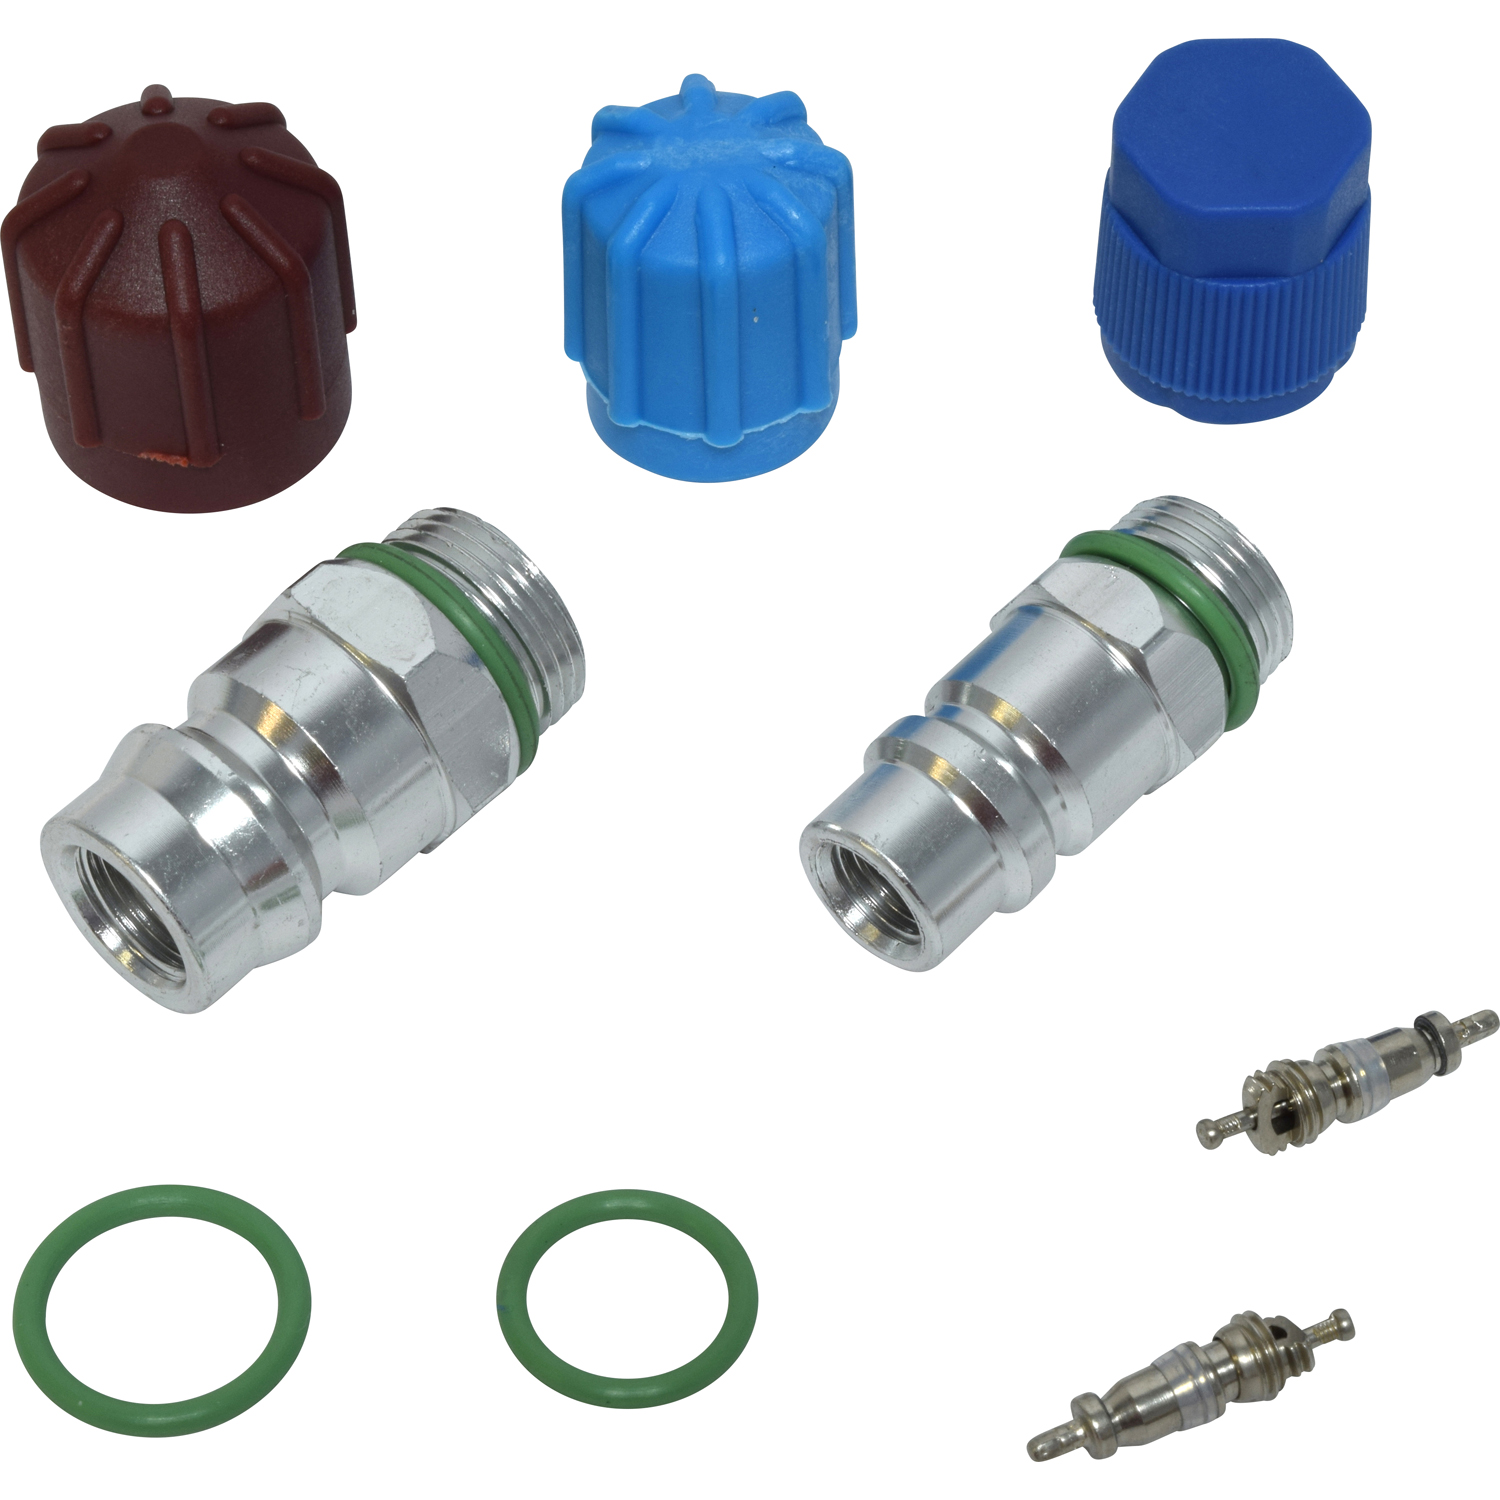 Valve and Cap Kit VC 2904C